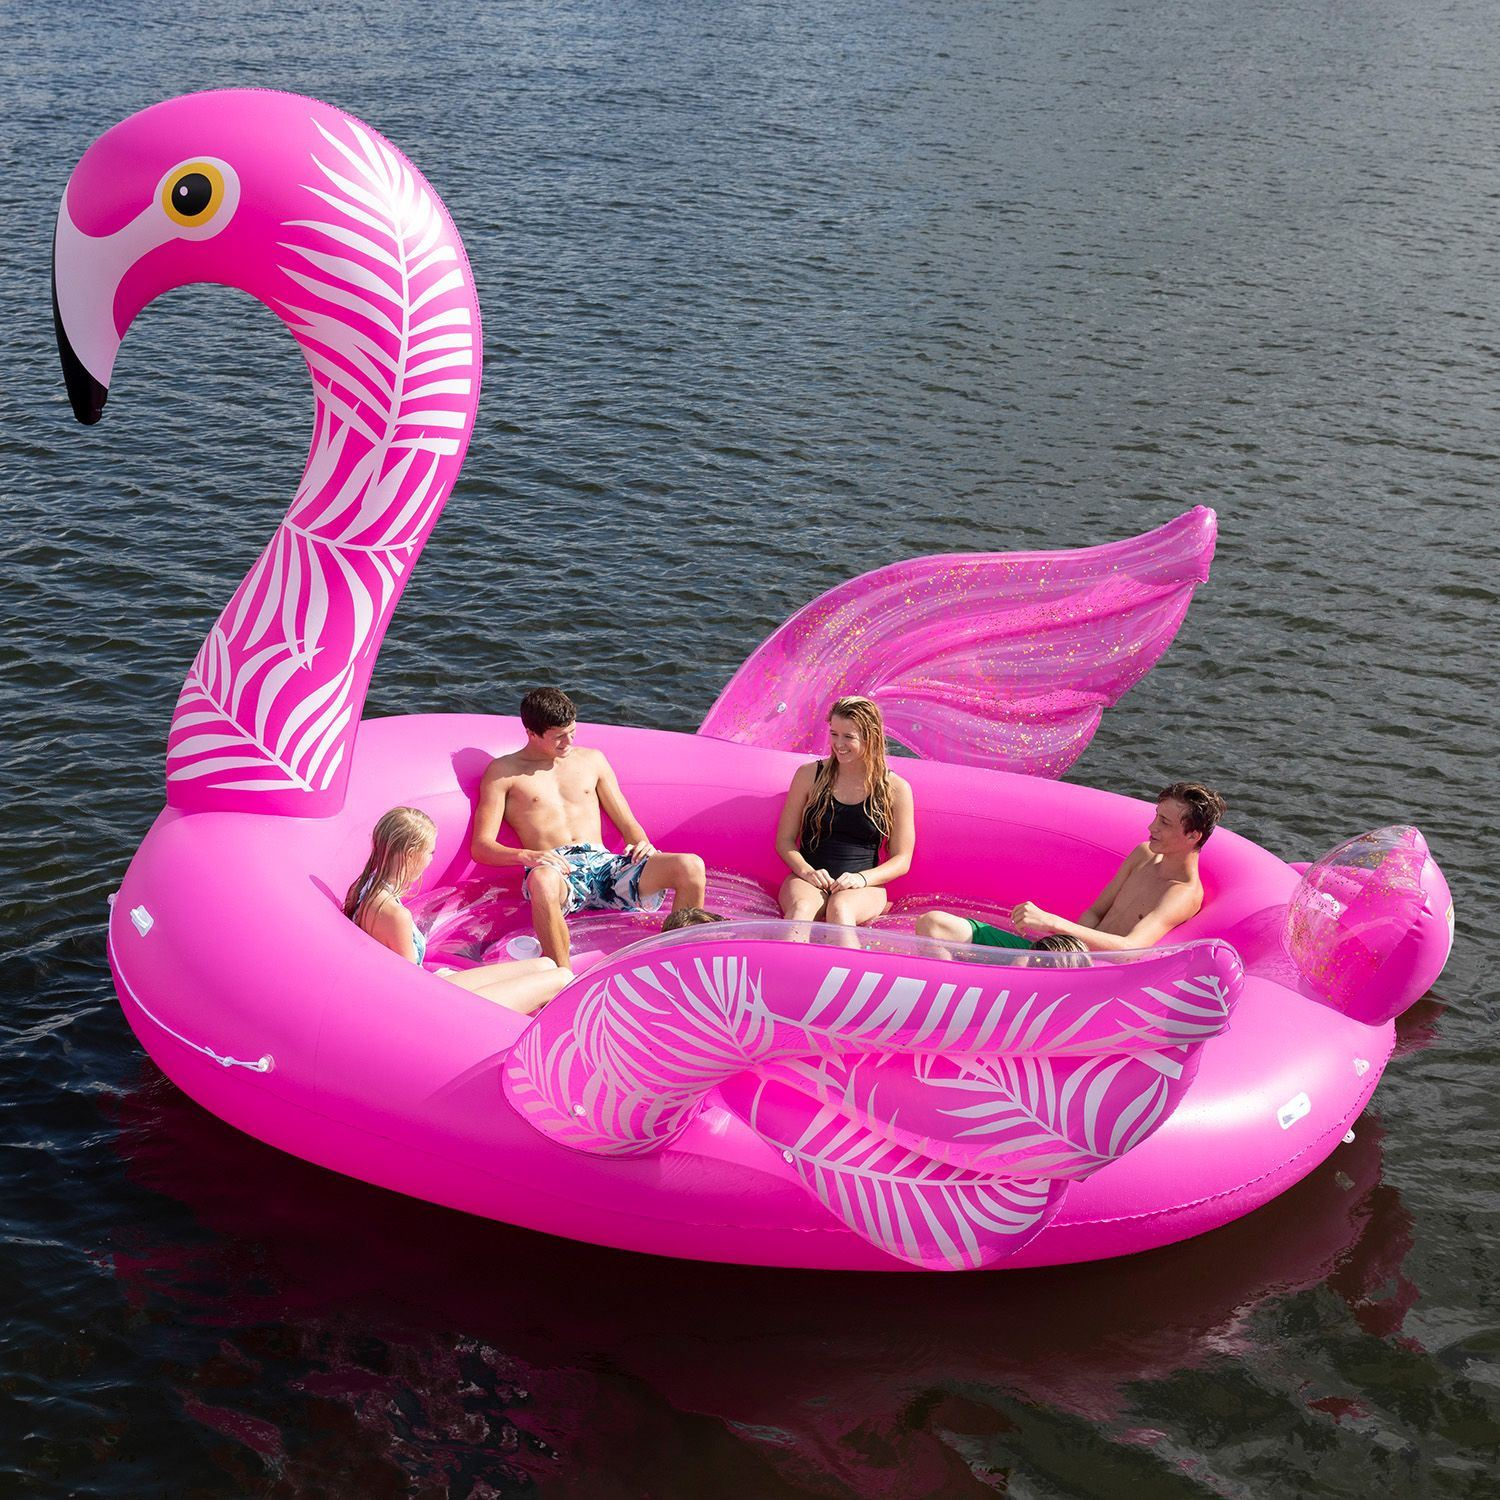 Party Island Beach: Big Inflatable 6 Person Party Island Water Float Lounge